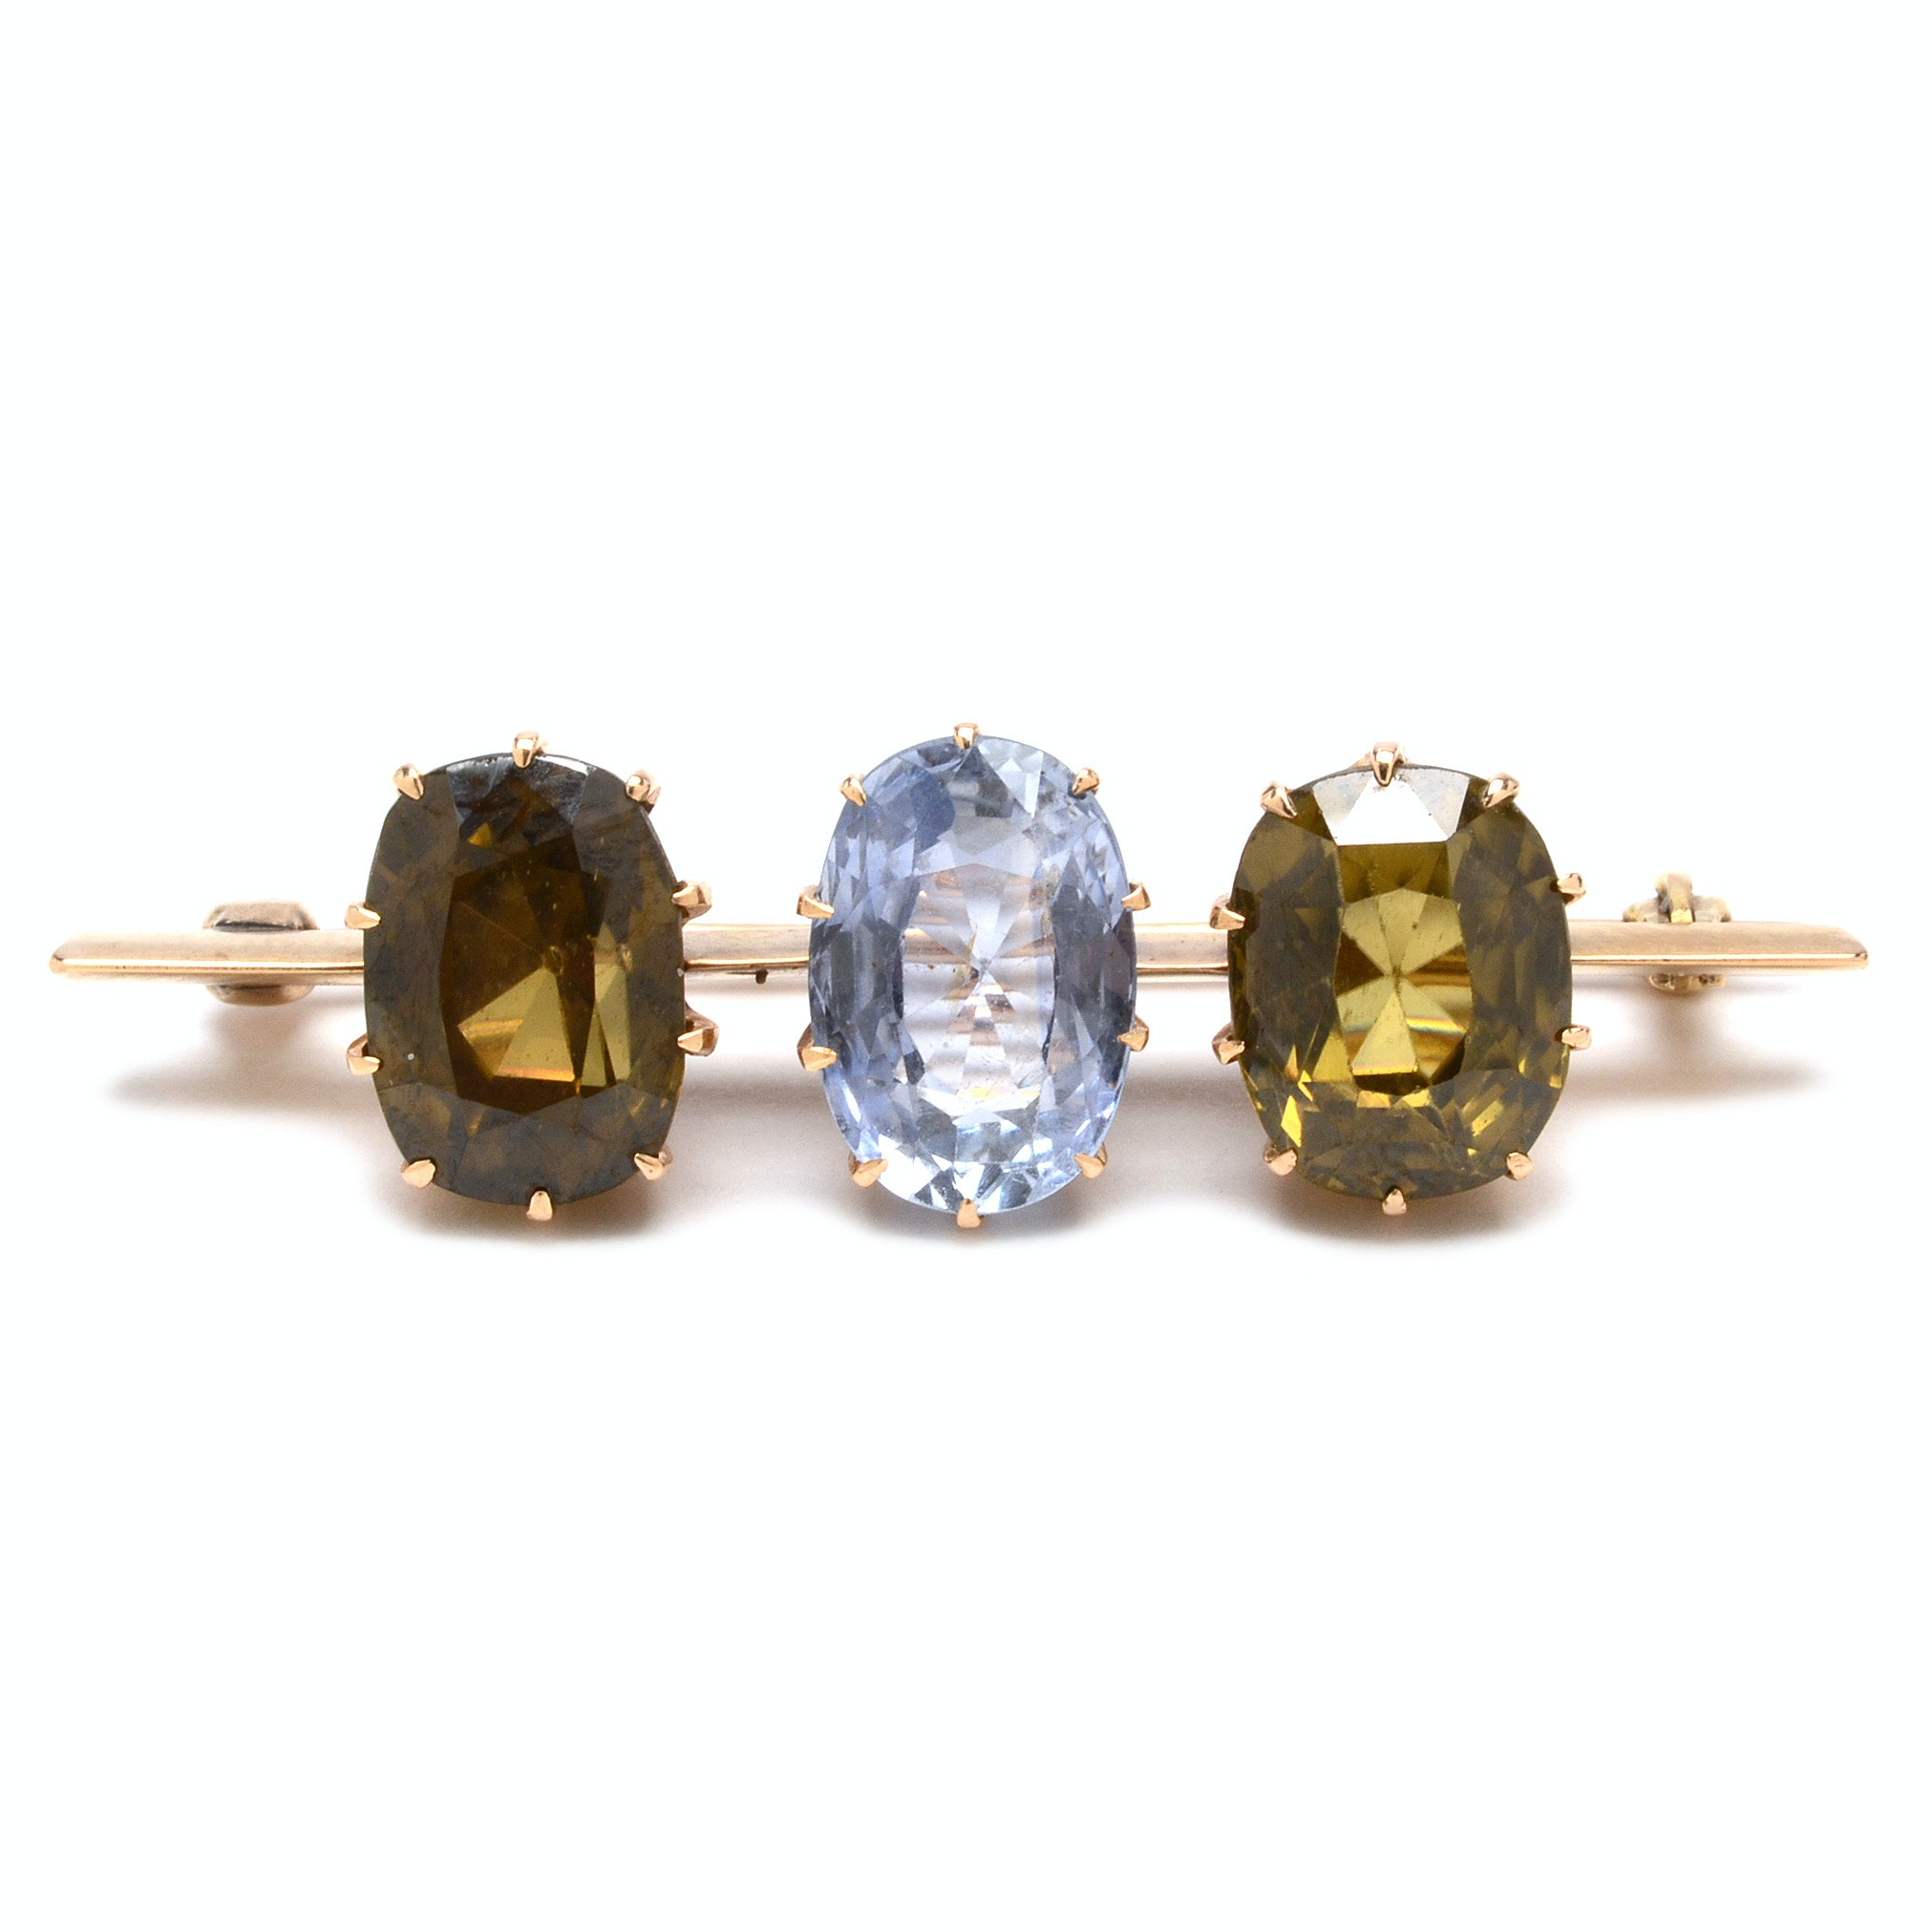 Antique 14K Yellow Gold Sapphire and Zircon Pin